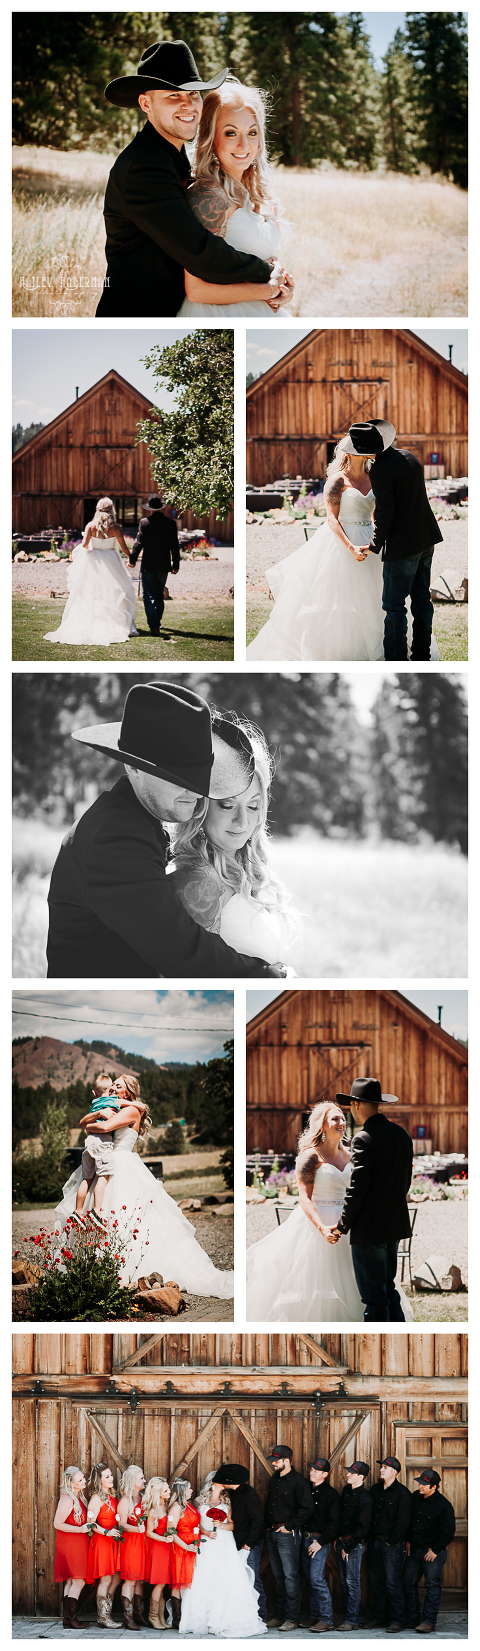 Bride and Groom,Ryan and Amber married at The Cattle barn in Cle Elum, WA, photographed by Hailey Haberman Ellensburg Wedding Photographer